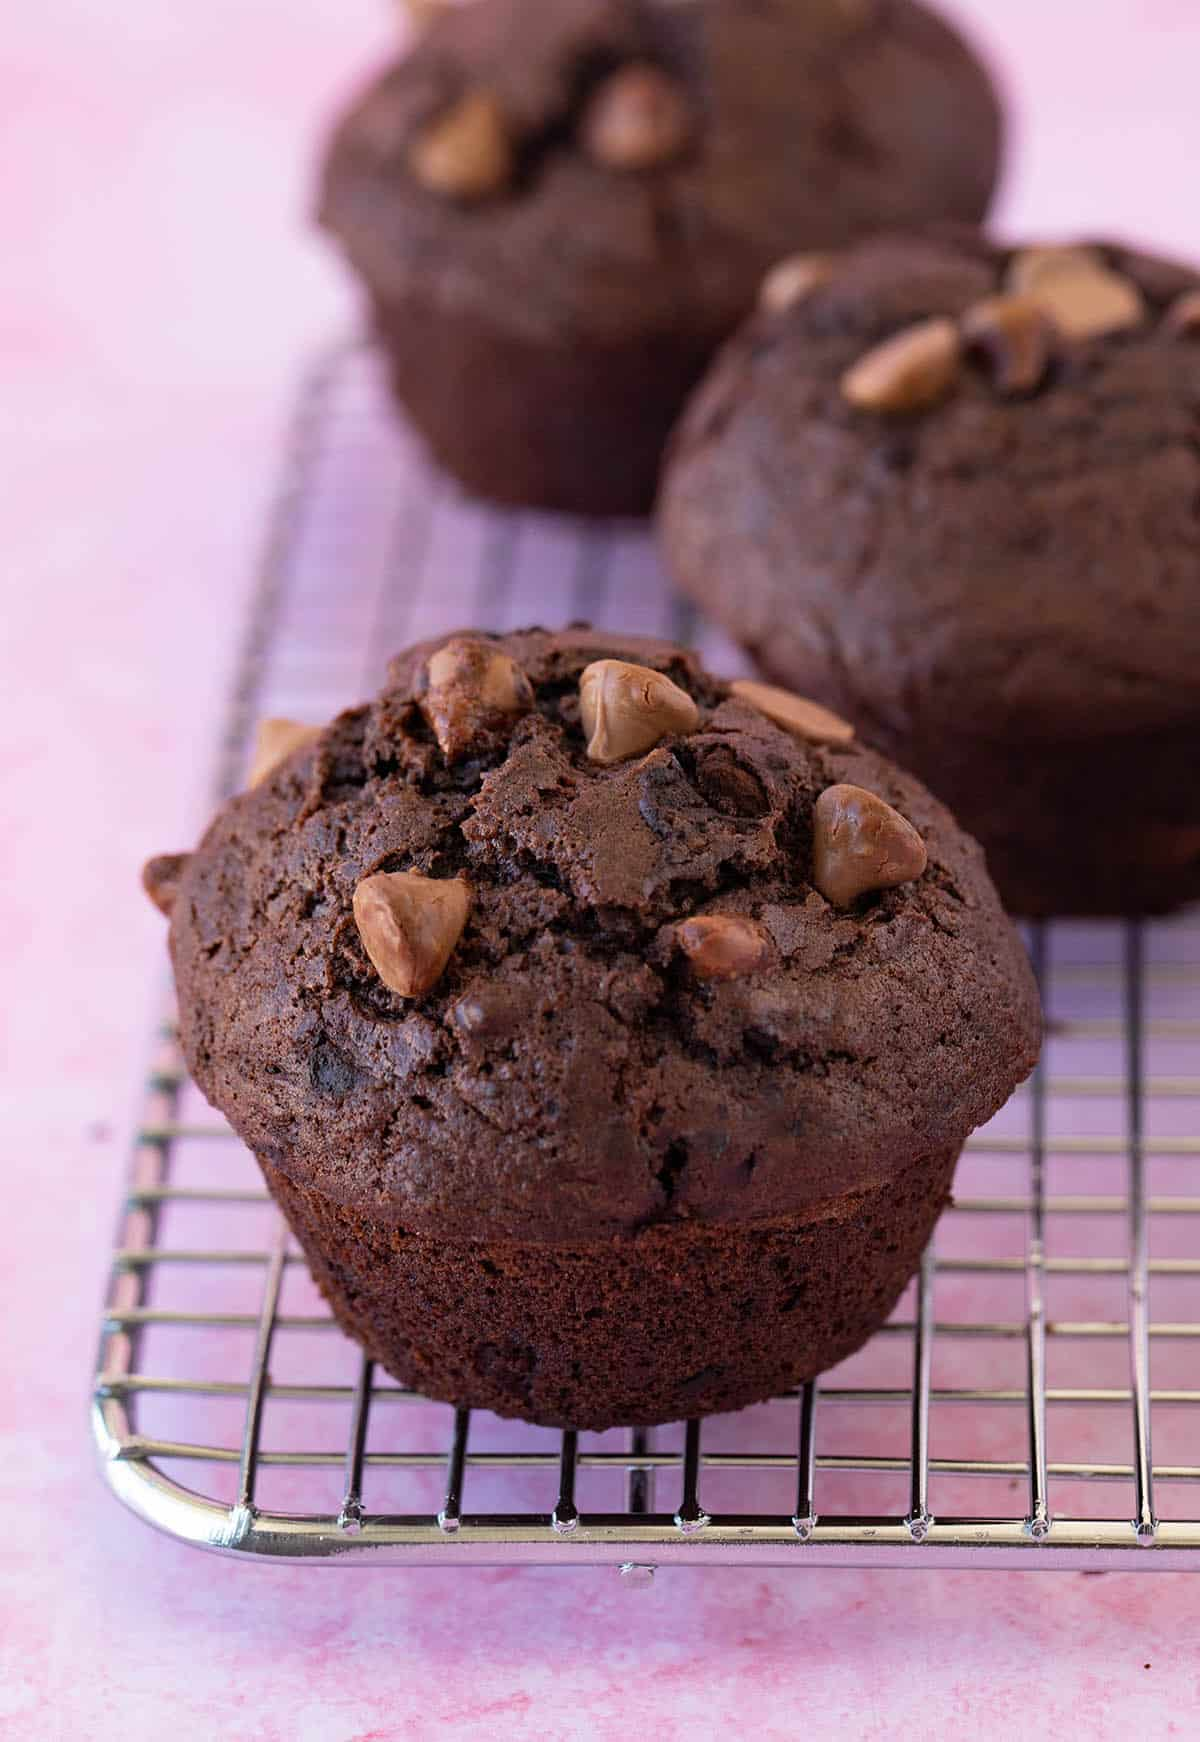 Bakery style chocolate muffins sitting on a cooling rack.